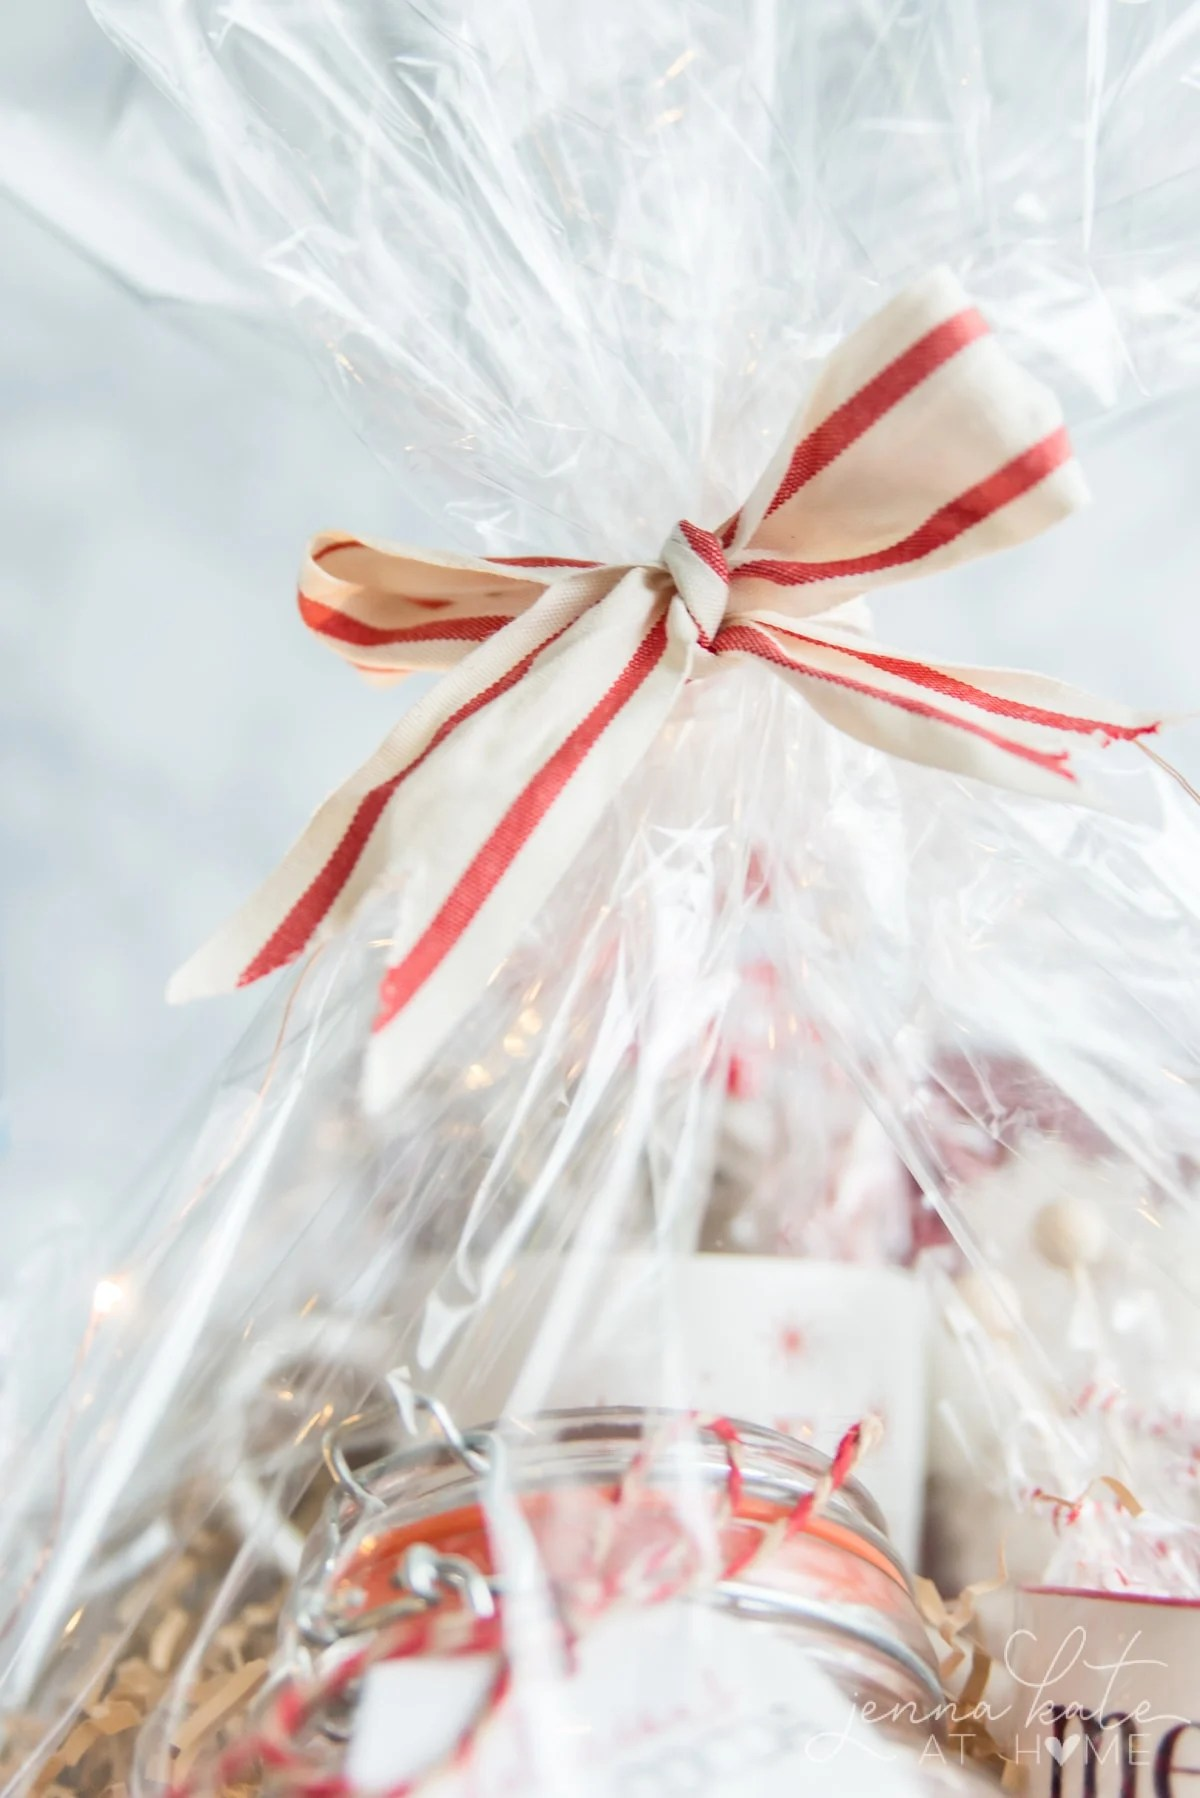 Gift basket wrapped with cellophane and tied with a festive ribbon